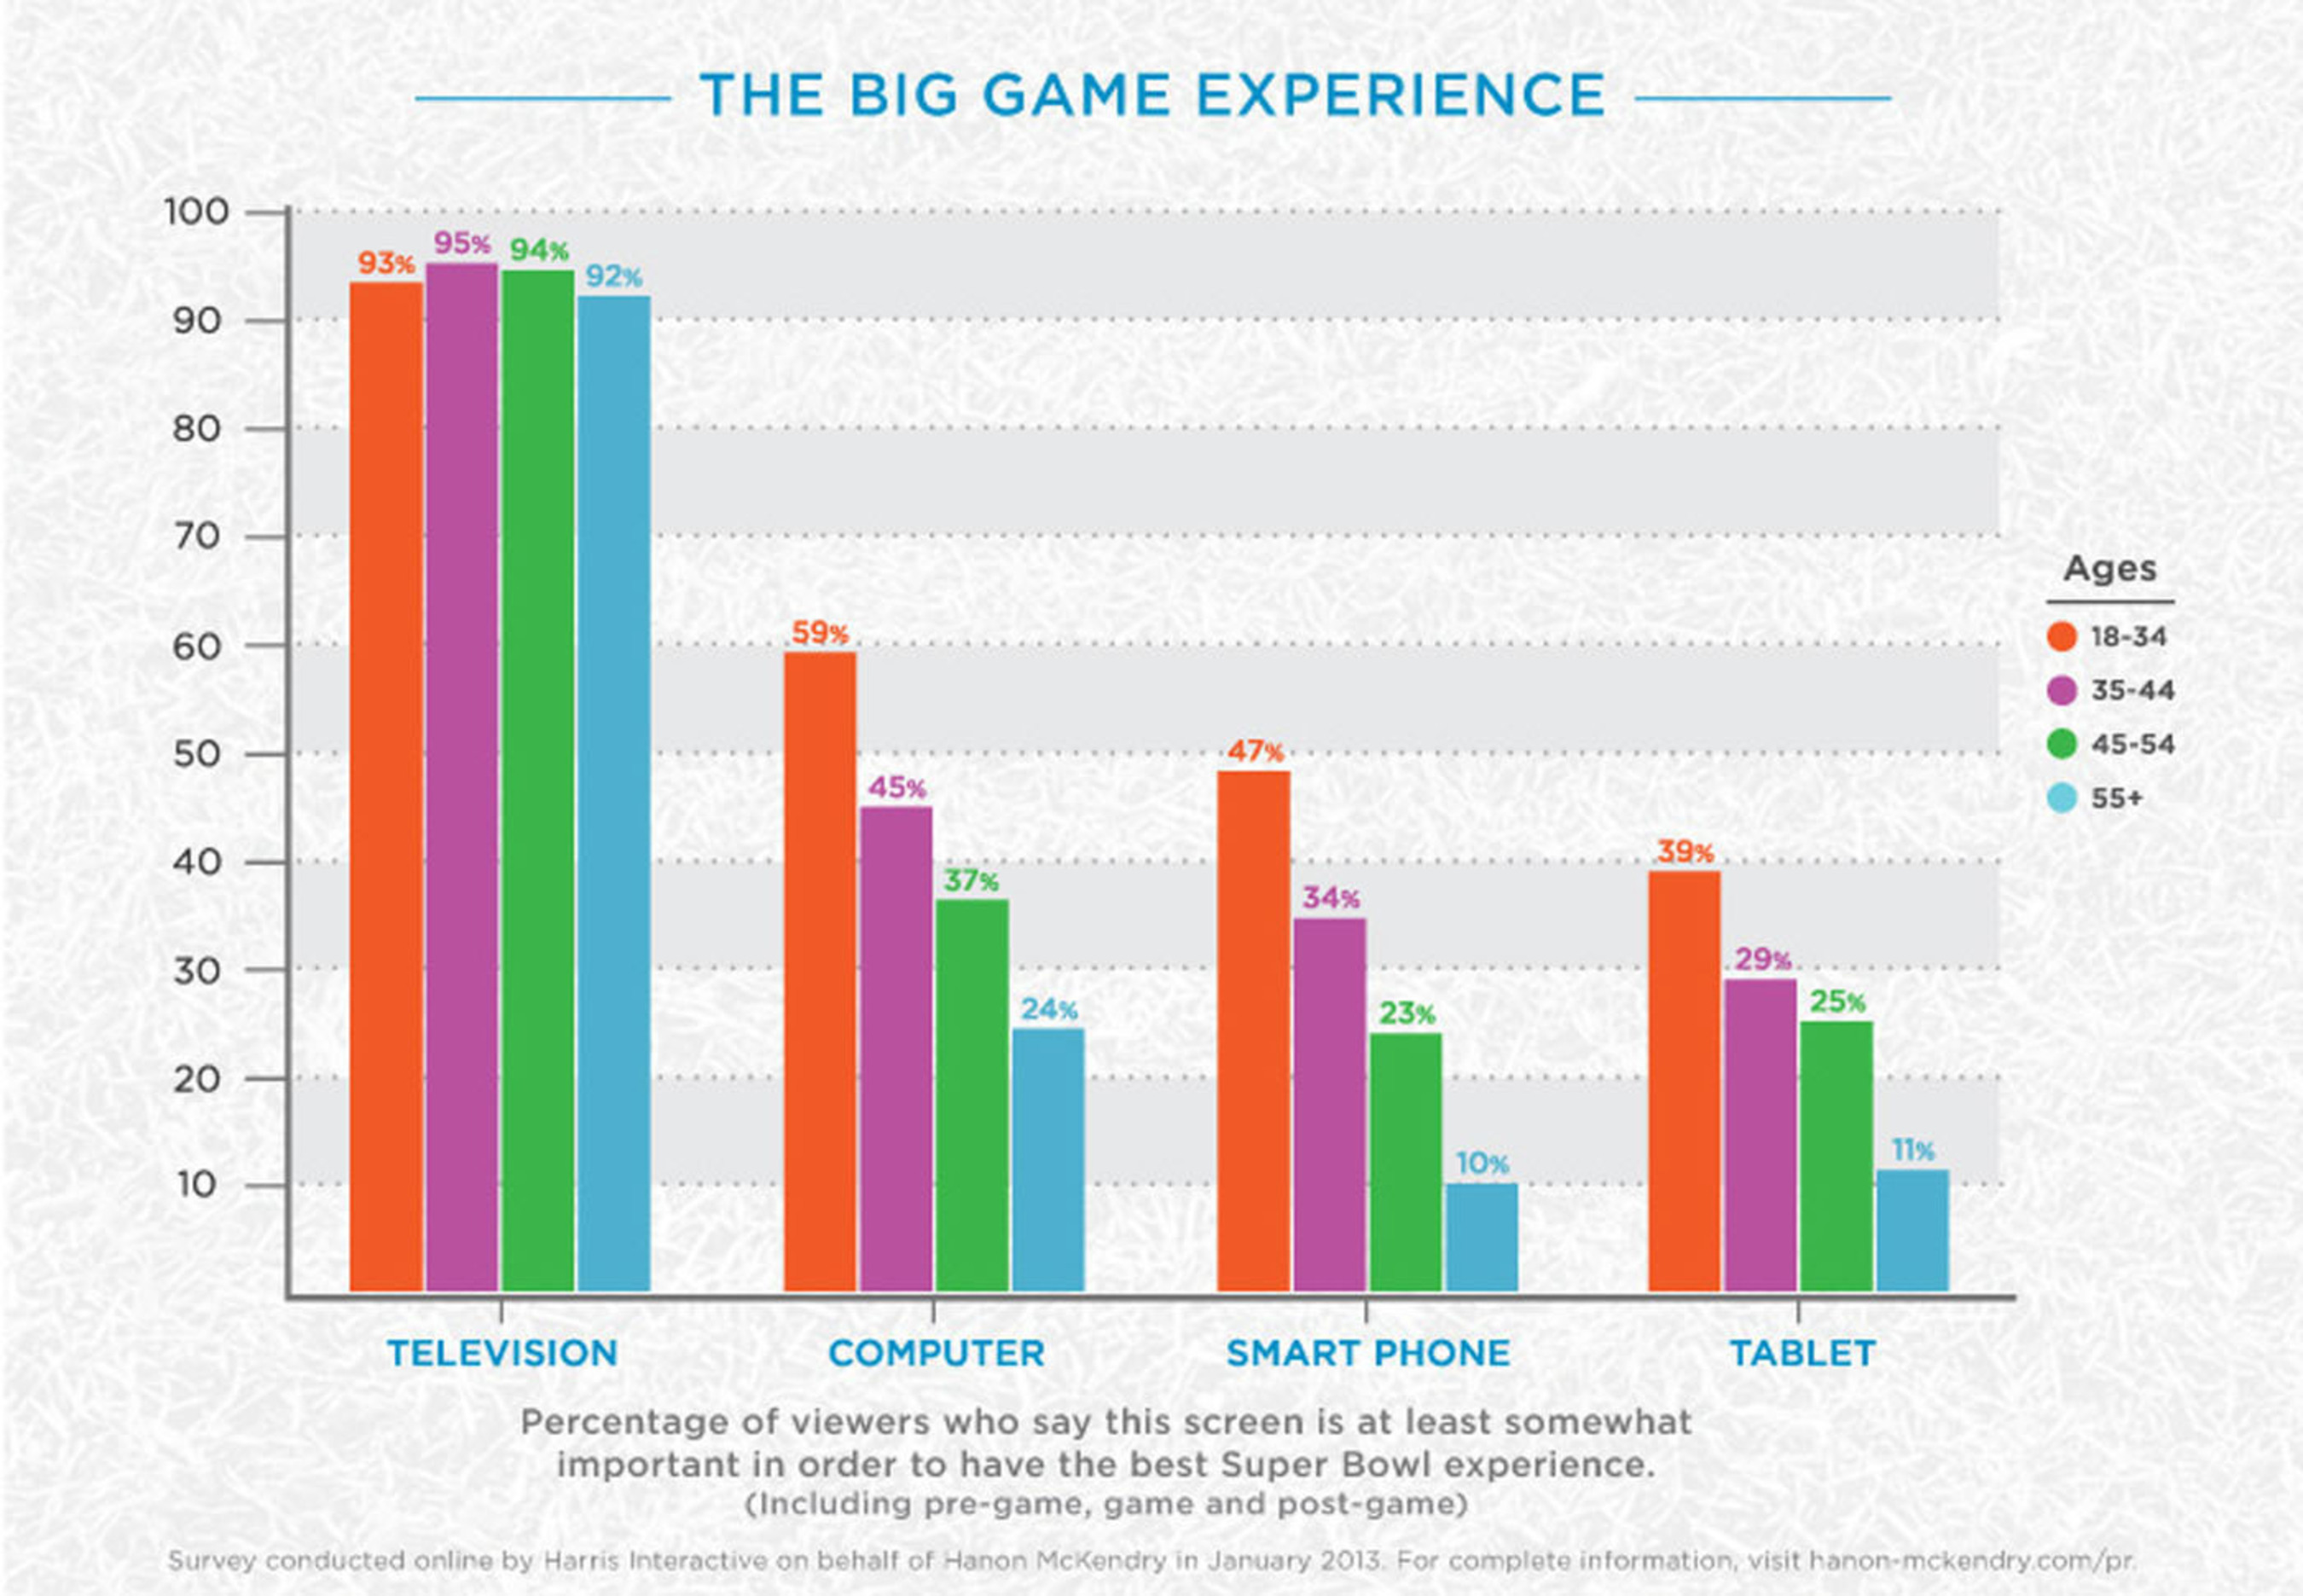 Ads Continue to Have Big Drawing Power on Super Bowl Sunday, According to Hanon McKendry Study